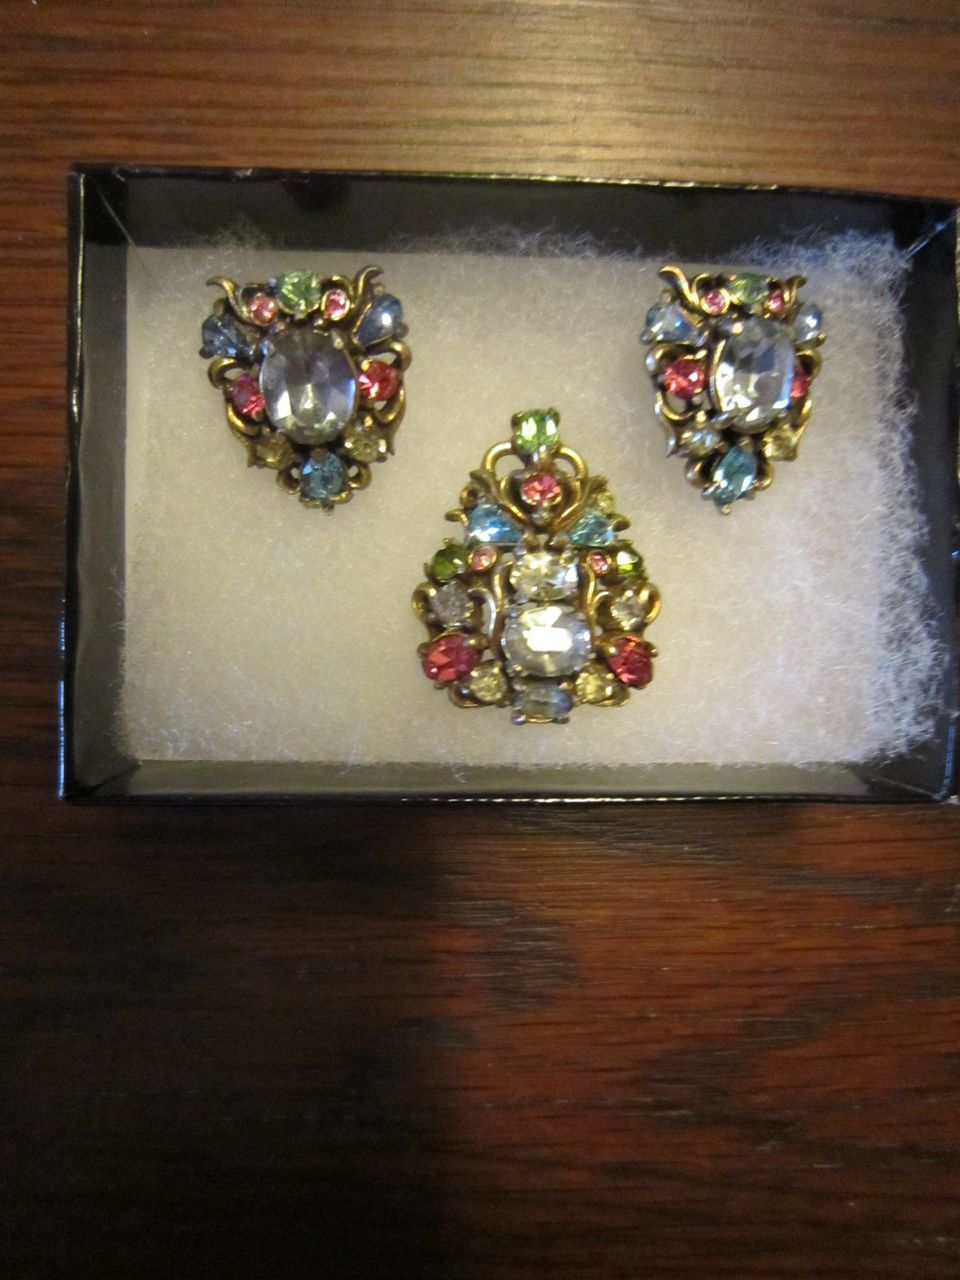 Hollycraft 1950 Brooch and Earrings in Pastels